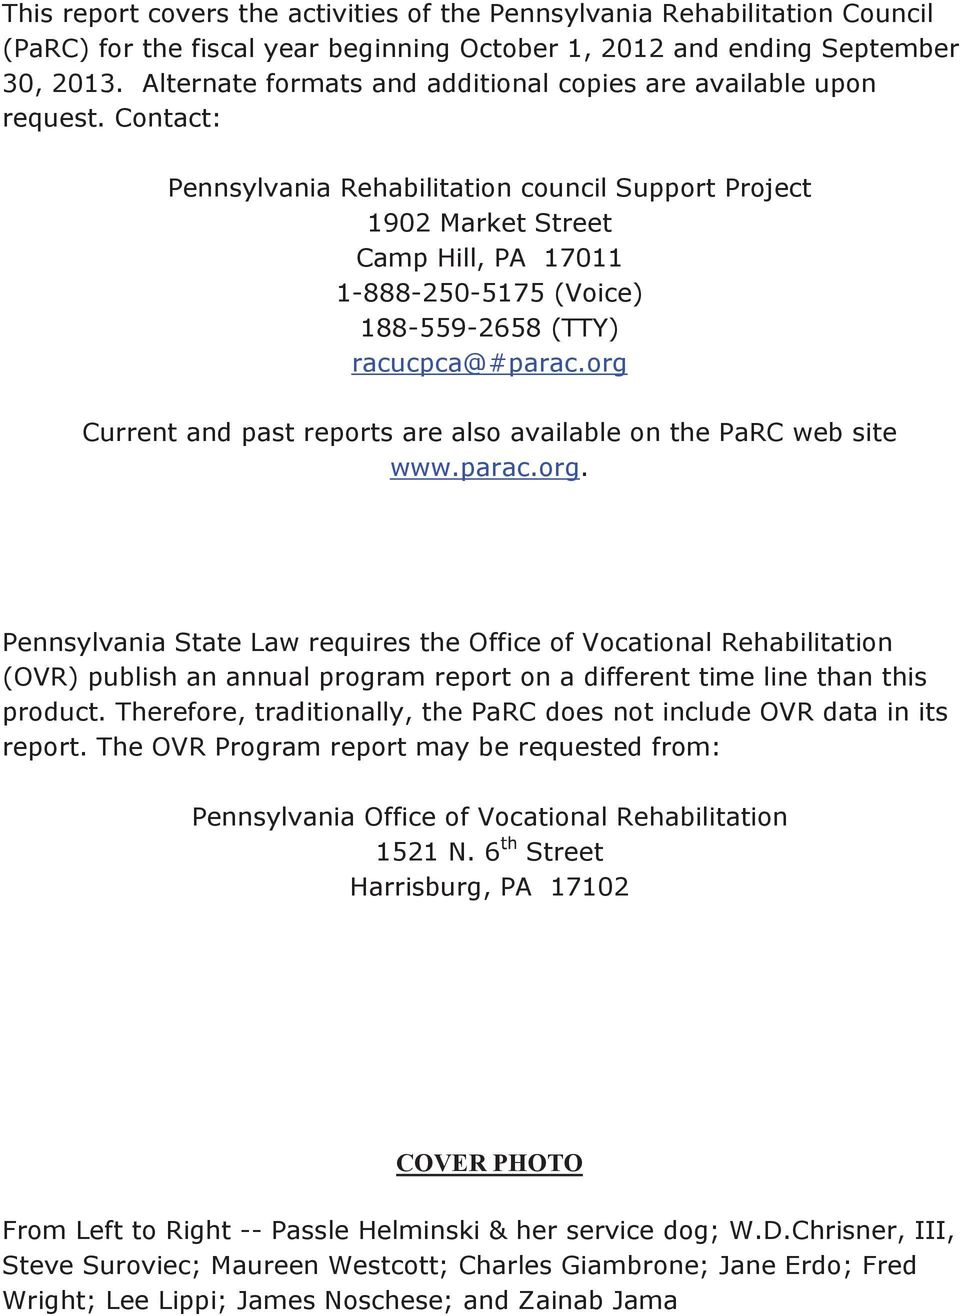 Contact: Pennsylvania Rehabilitation council Support Project 1902 Market Street Camp Hill, PA 17011 1-888-250-5175 (Voice) 188-559-2658 (TTY) racucpca@#parac.